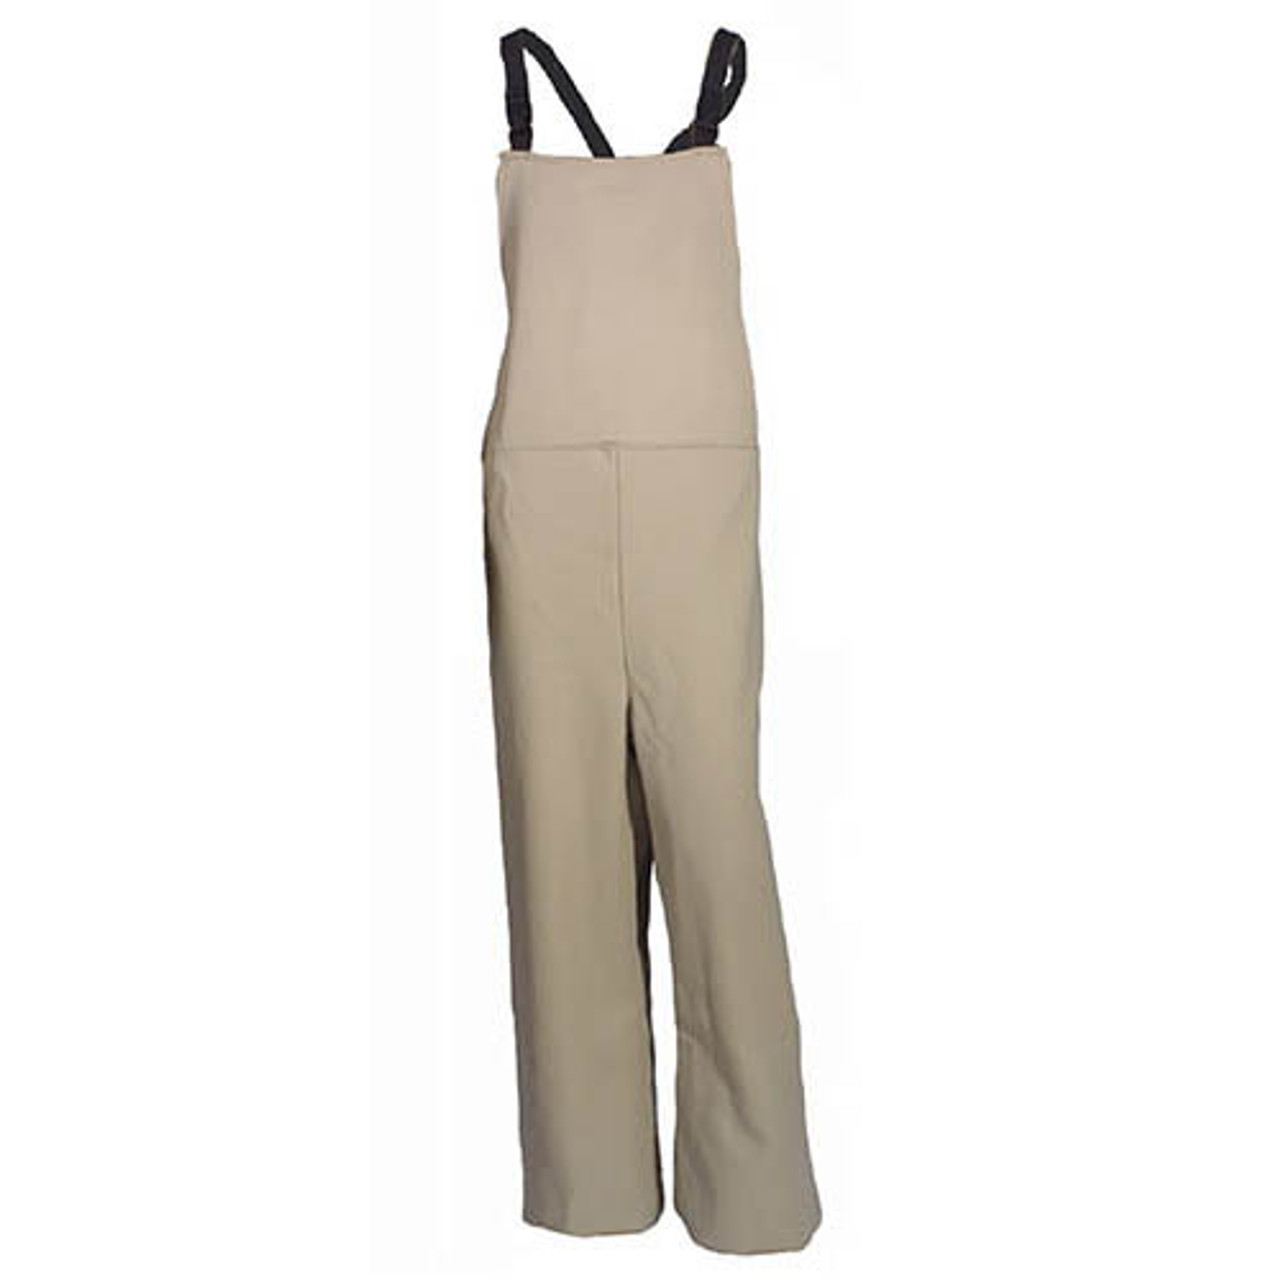 Cementex HRC4-OA-5X Arc Flash Rated Task Wear FR Treated Cotton Overalls, Rating: 40 Calories, Color: Khaki, Size: 5X-Large